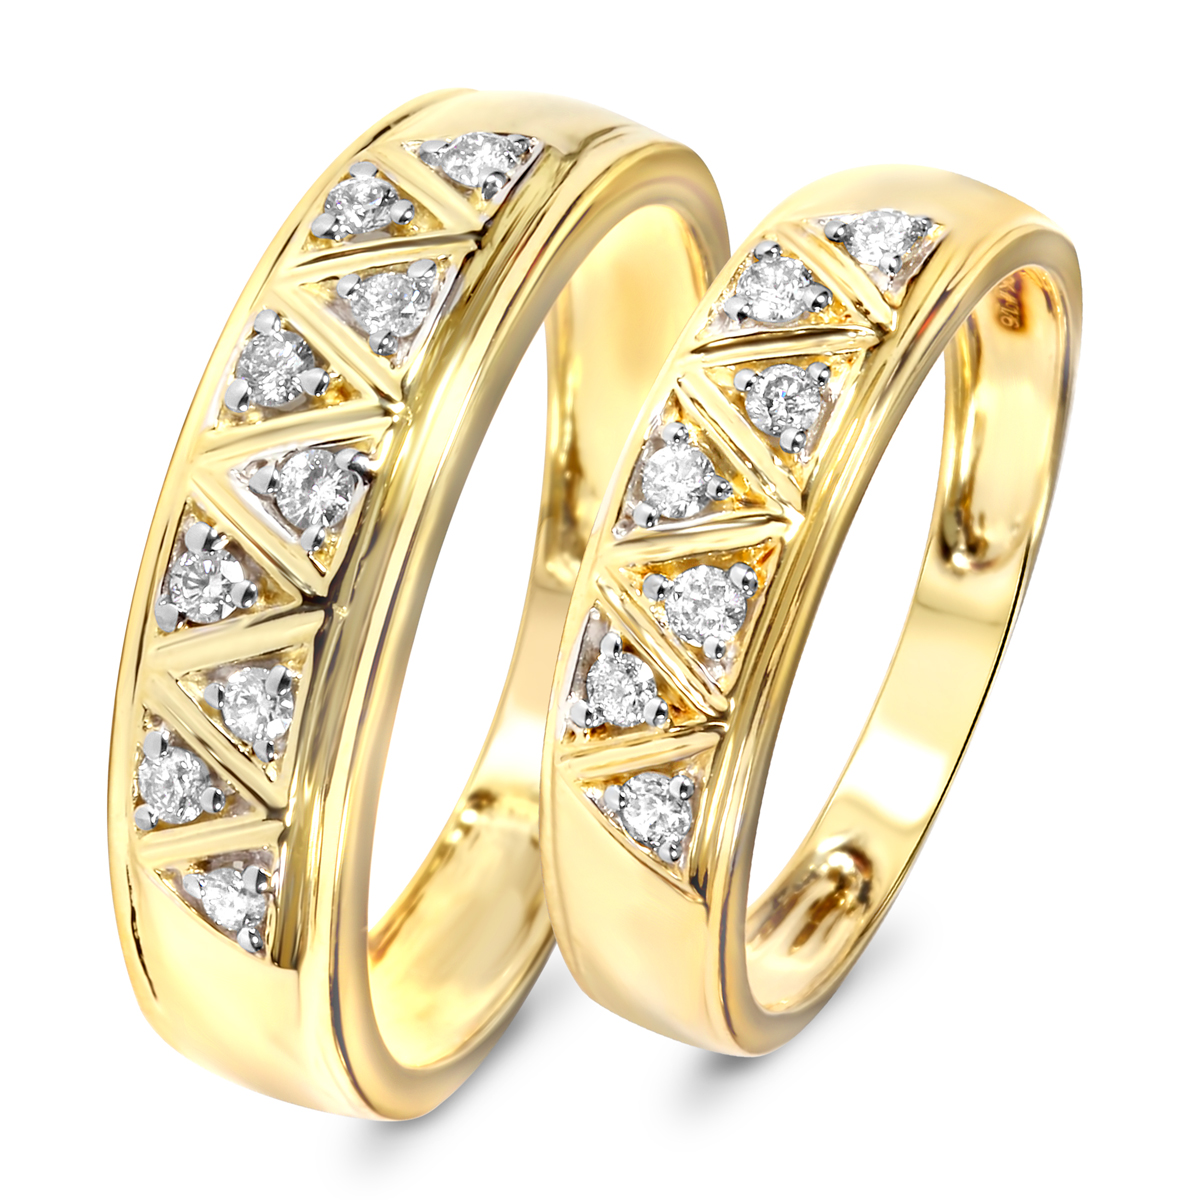 1 3 Carat T W Diamond His And Hers Wedding Band Set 10k Yellow Gold